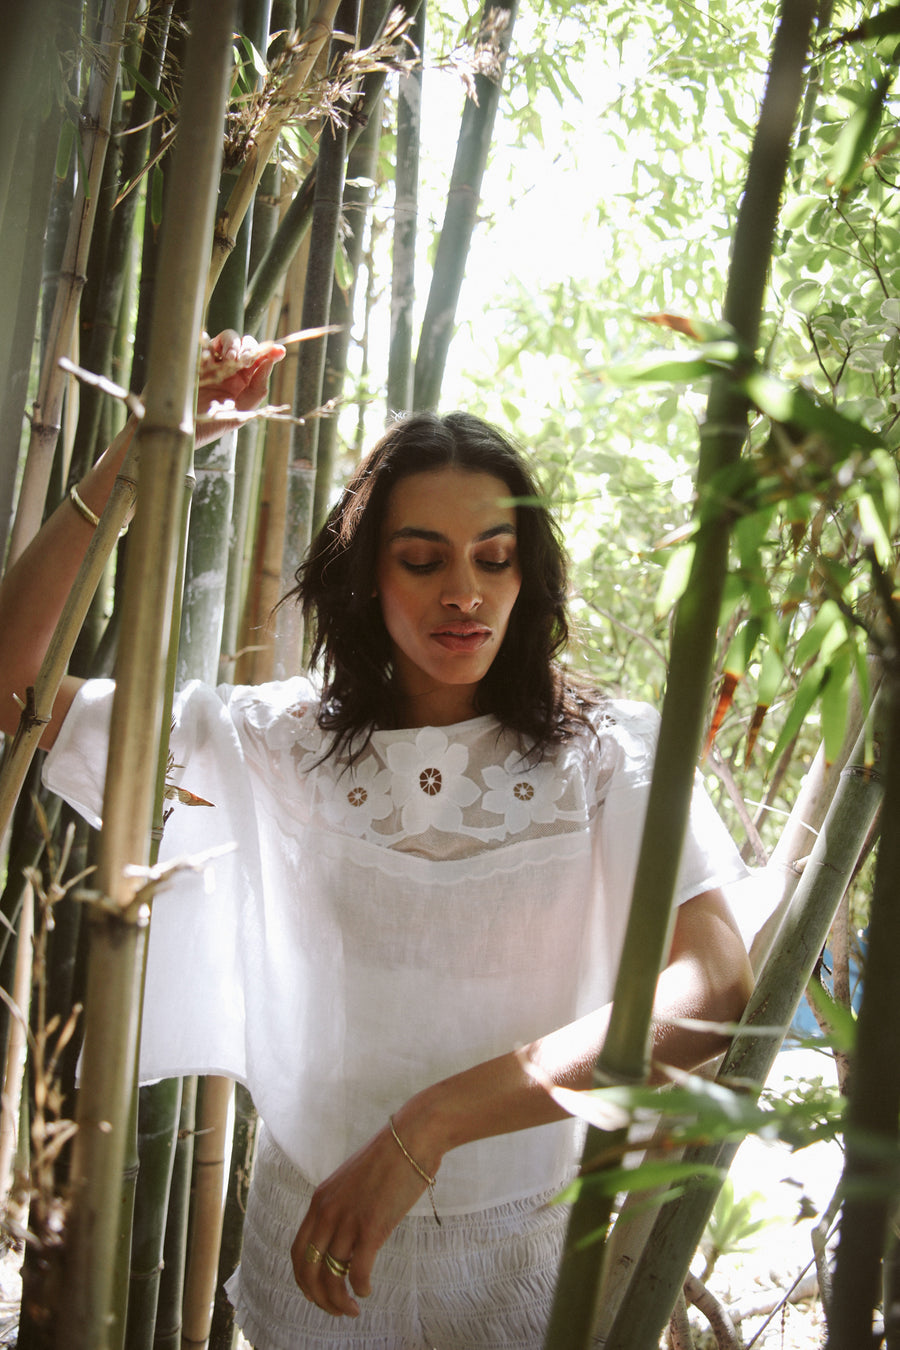 White, 100% linen short-sleeve t-shirt with a drop armhole, loose fit and appliqué  floral embroidery on a semi-sheer cotton tulle yoke.